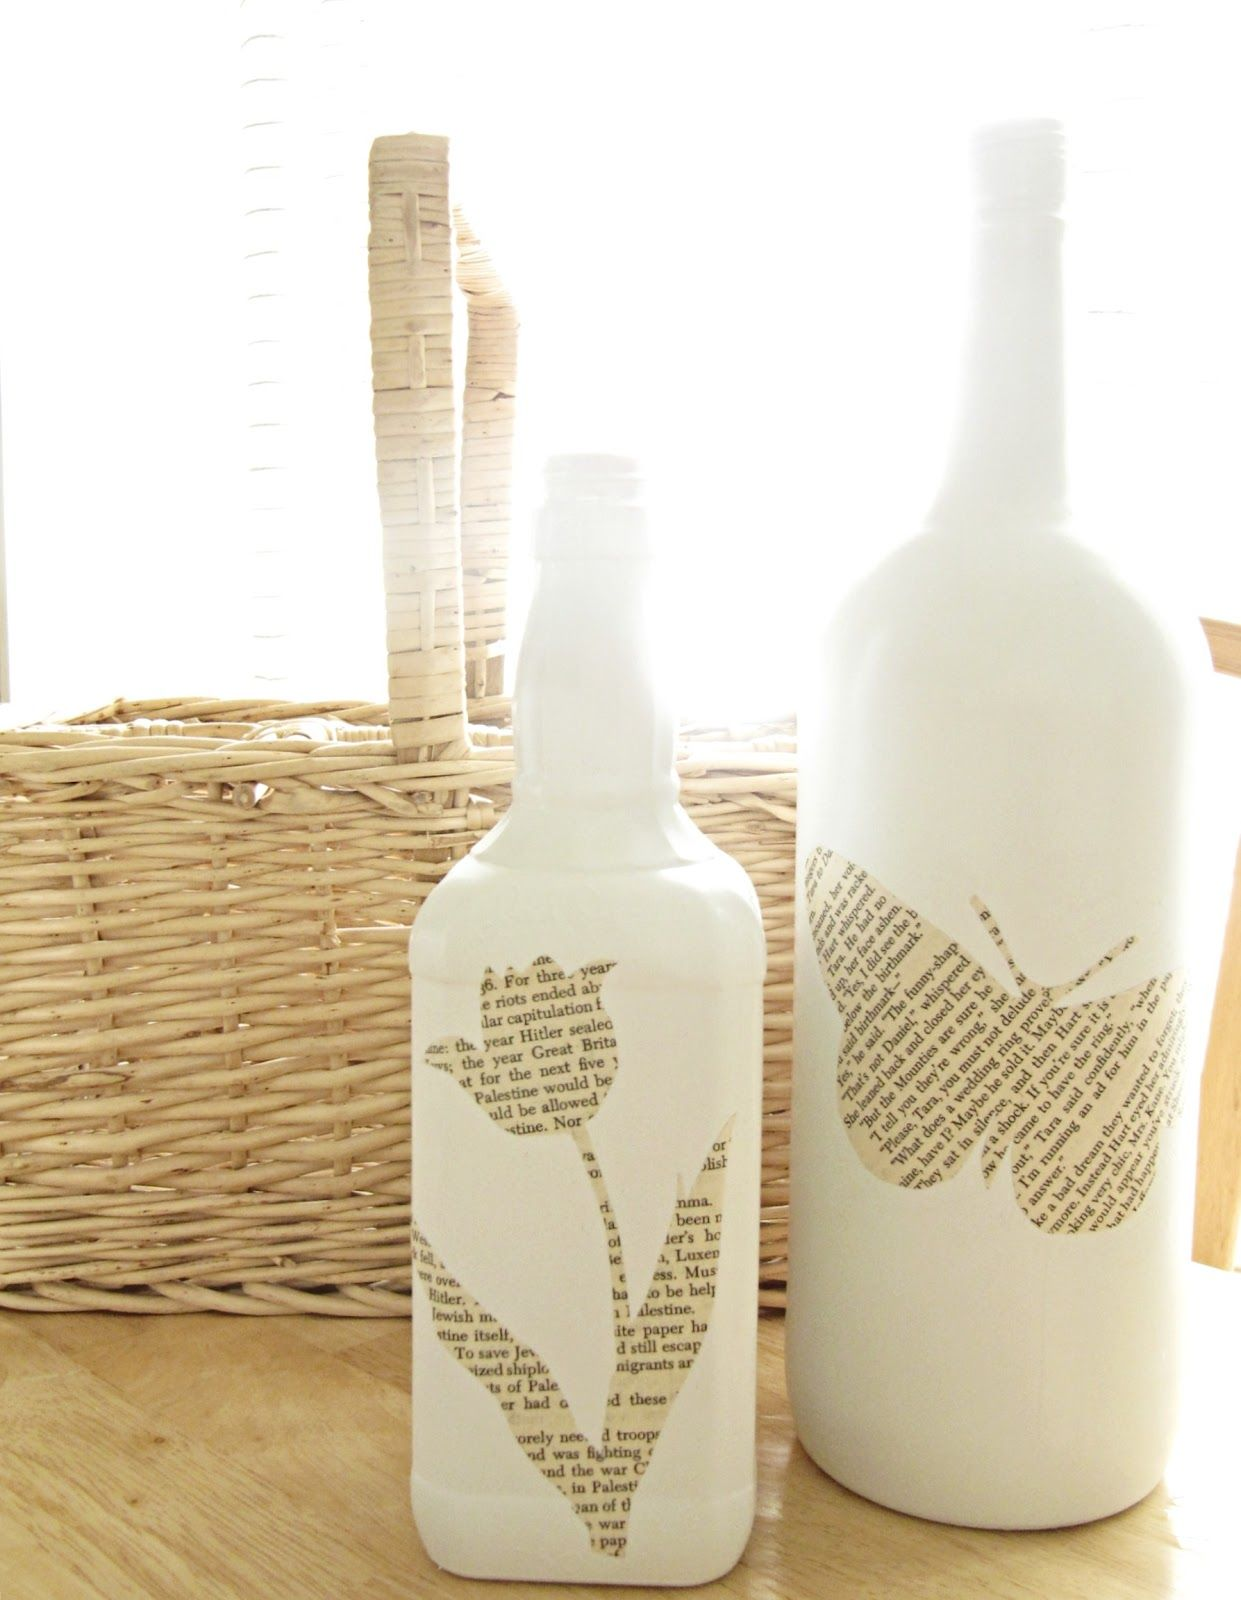 Leere Flaschen Dekorieren Bottles Decorated With Pages Of Books Or Someone S Favorite Bible